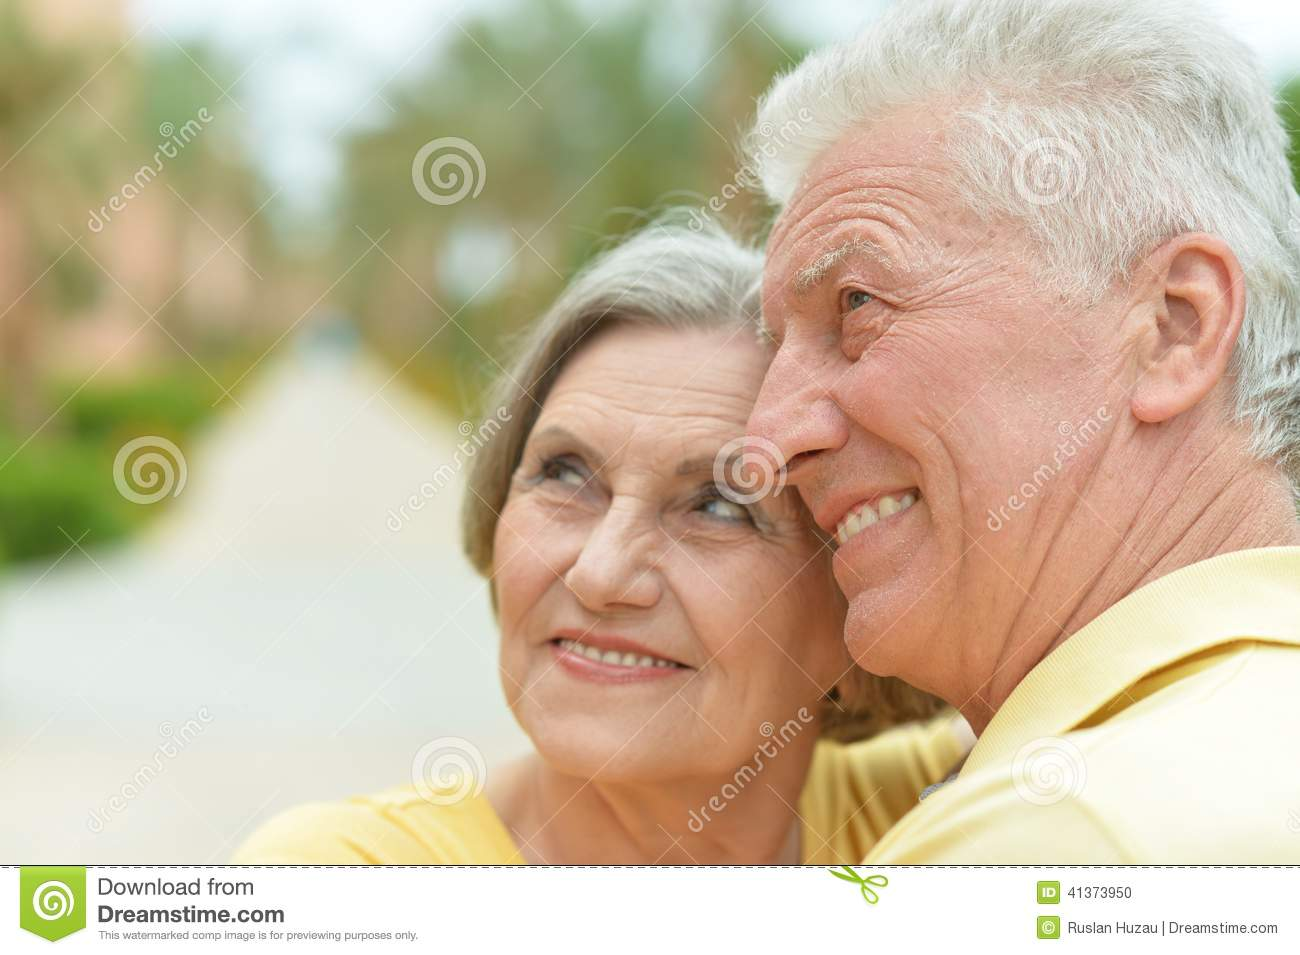 Happy elderly couple at nature on leaves background Happy Elderly Couple